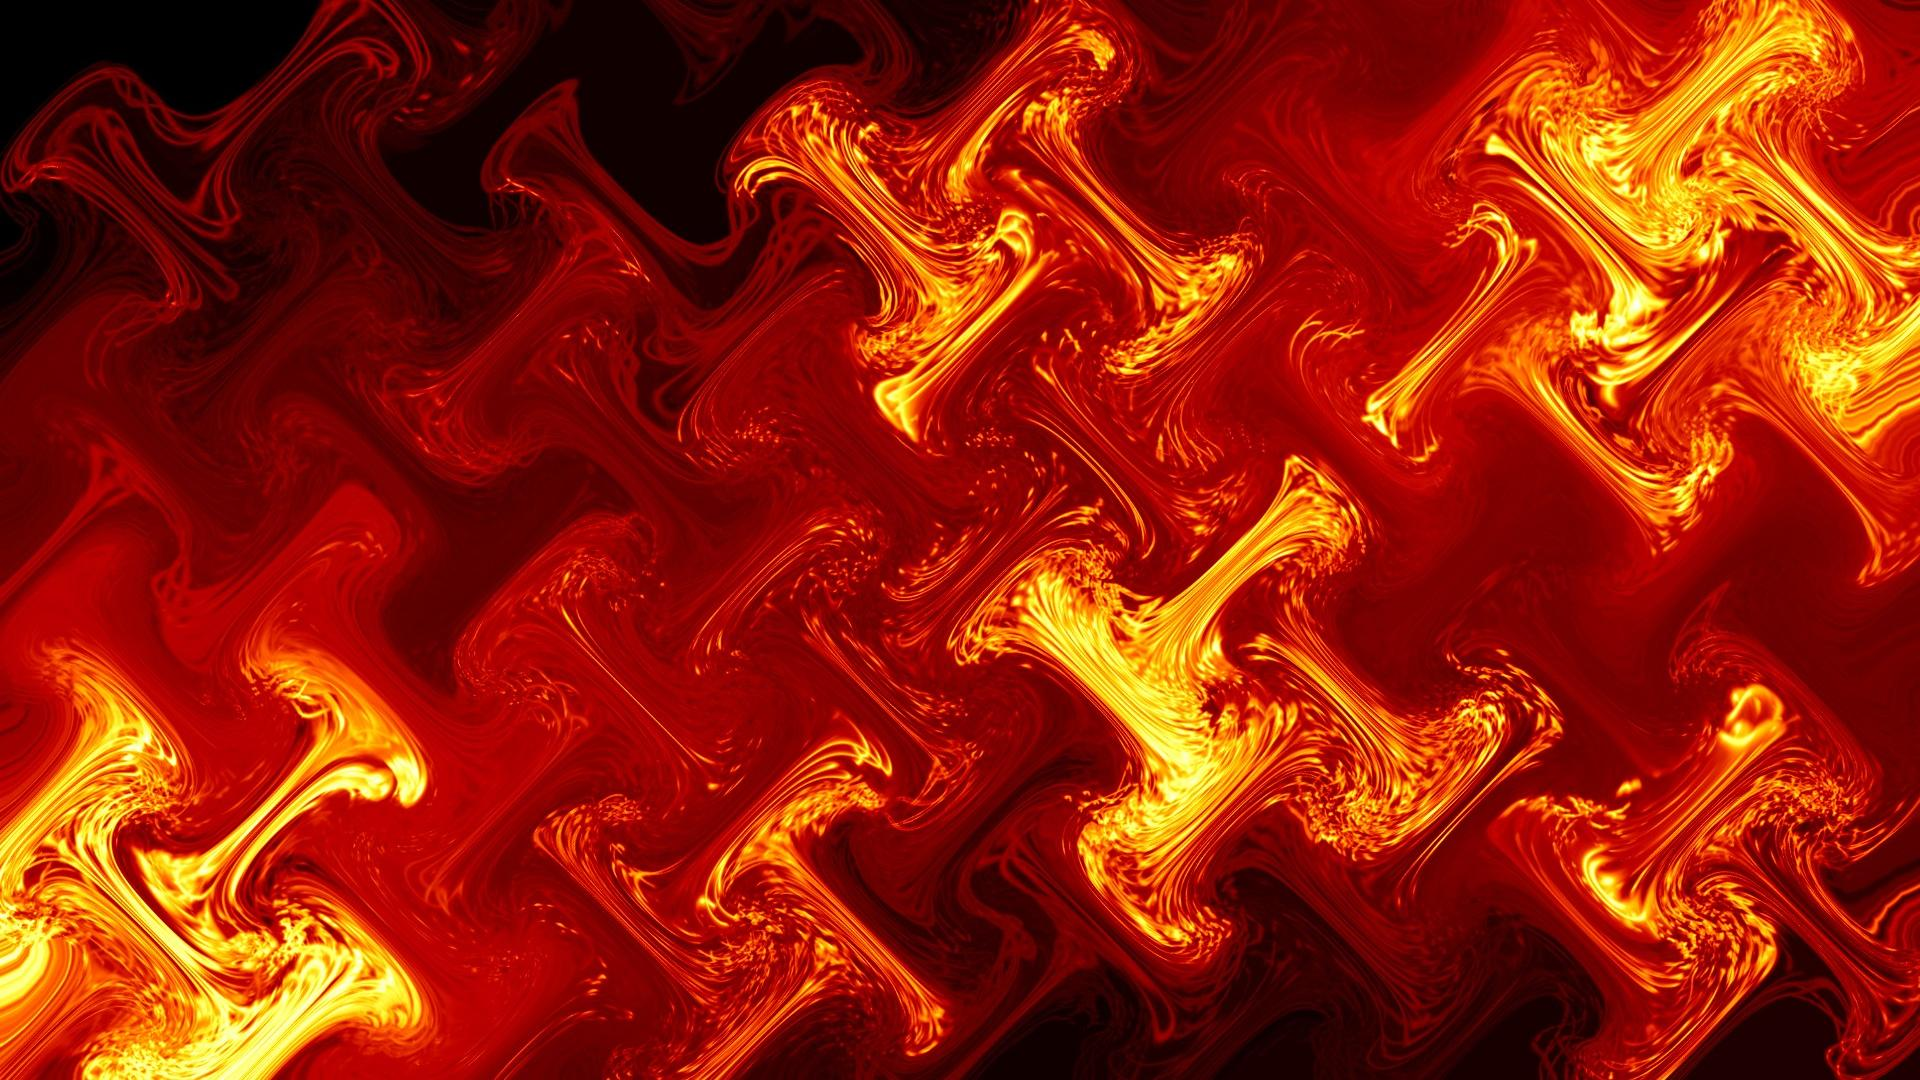 free 1920x1080 Hd Red flame backgrounds downloads wallpaper background 1920x1080